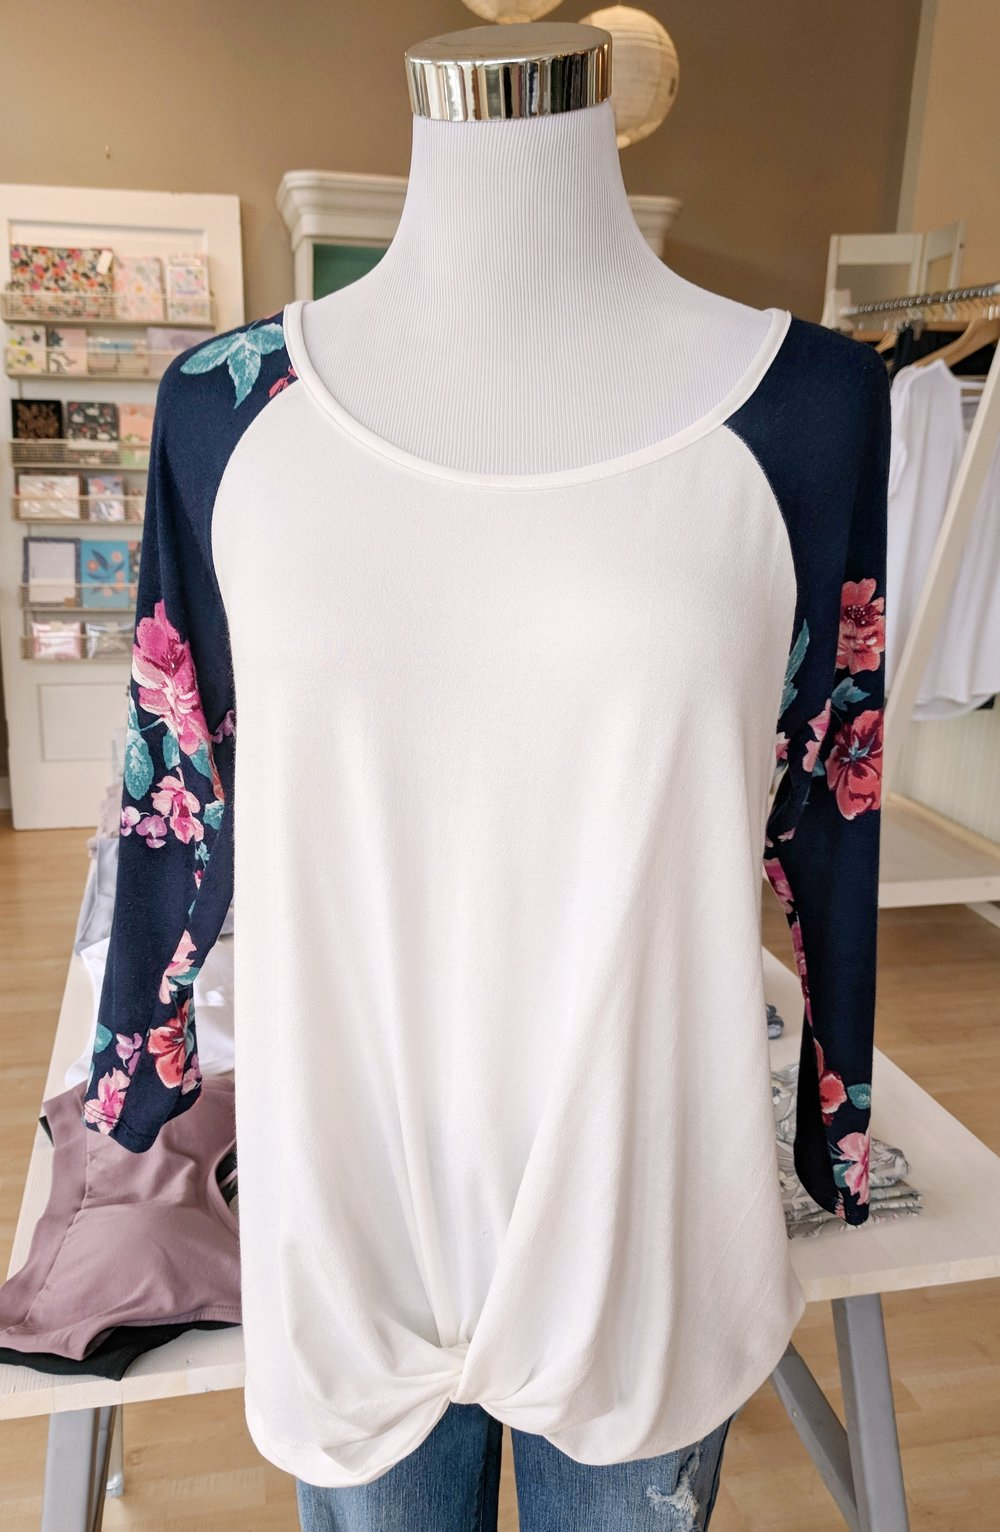 Scoop neck twist top with floral sleeve $35